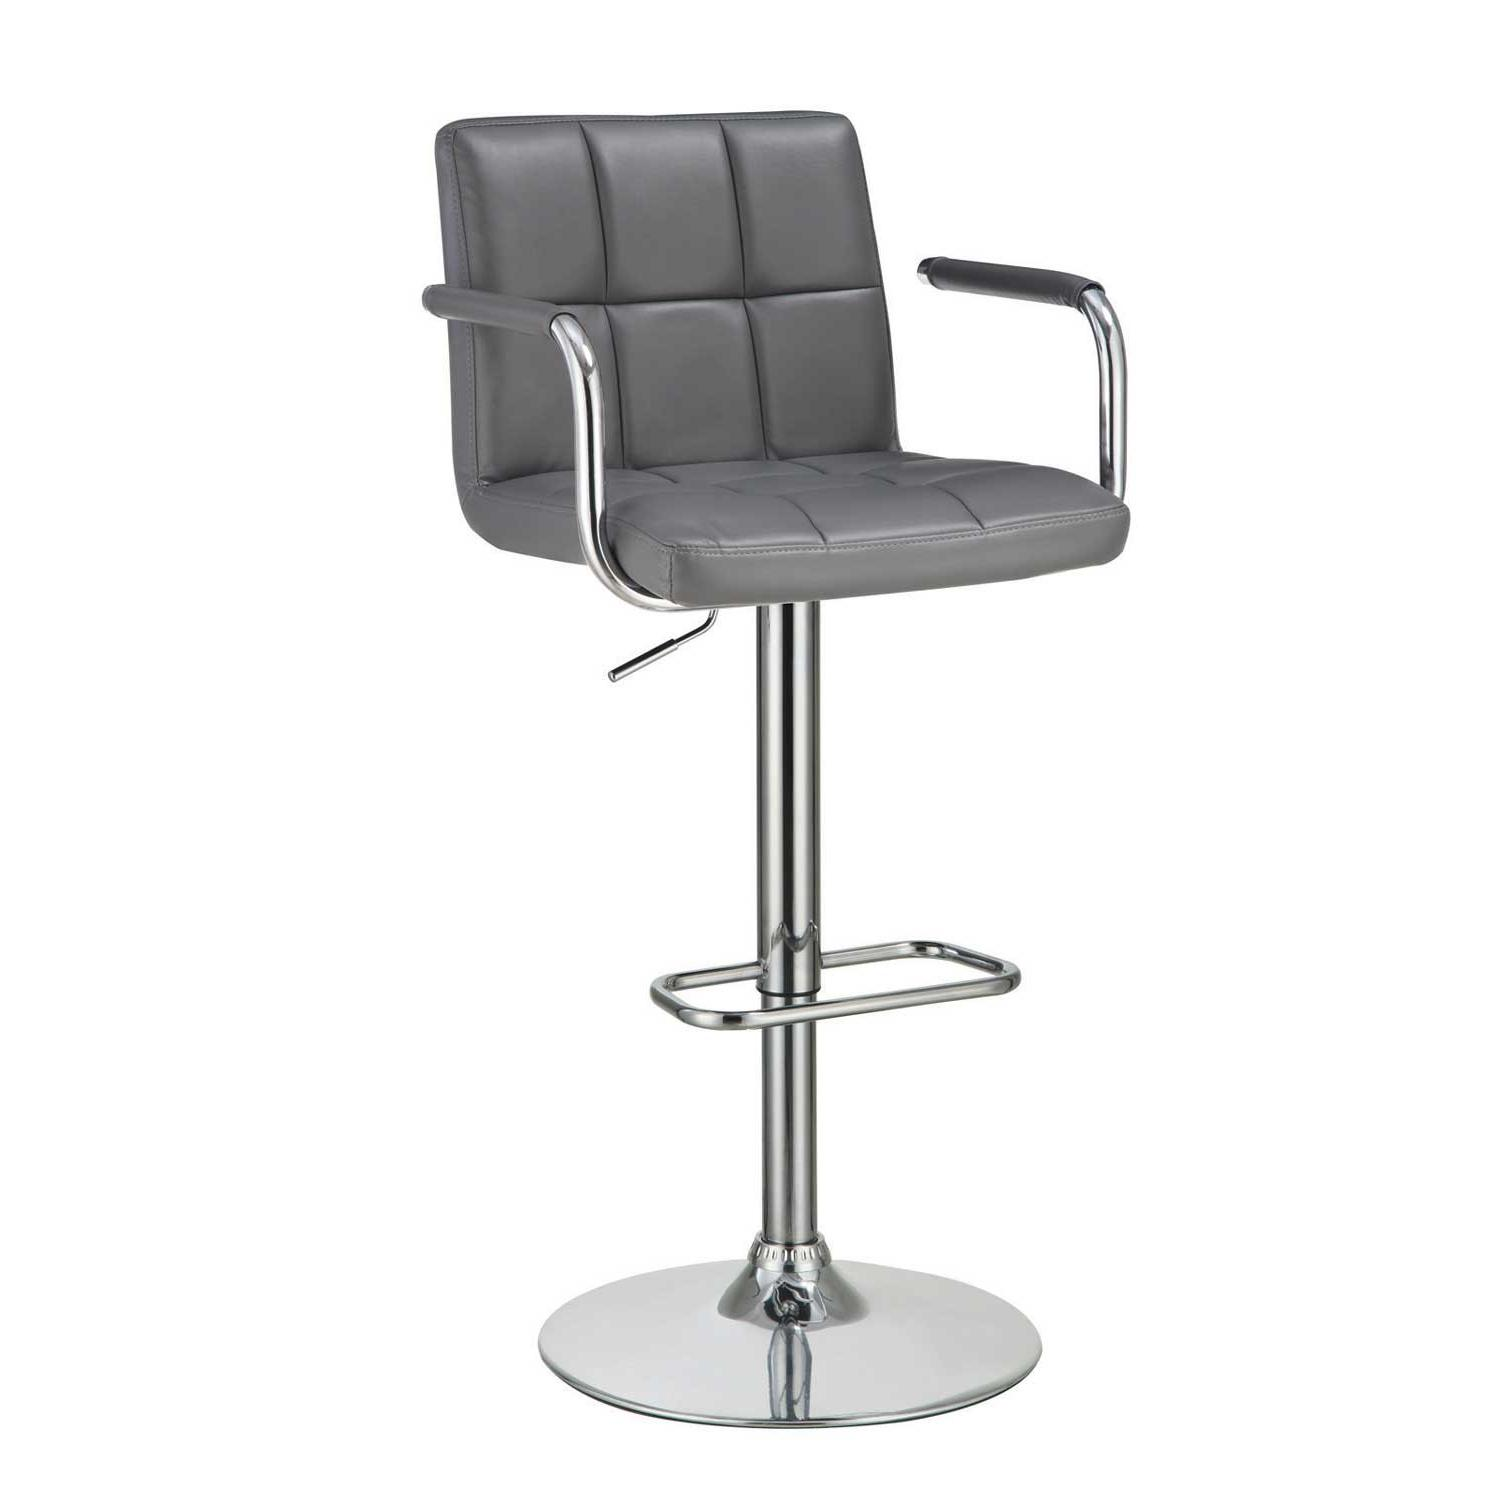 Modern Barstool w/ Armrests & Padded Back/Seat in Grey Leath